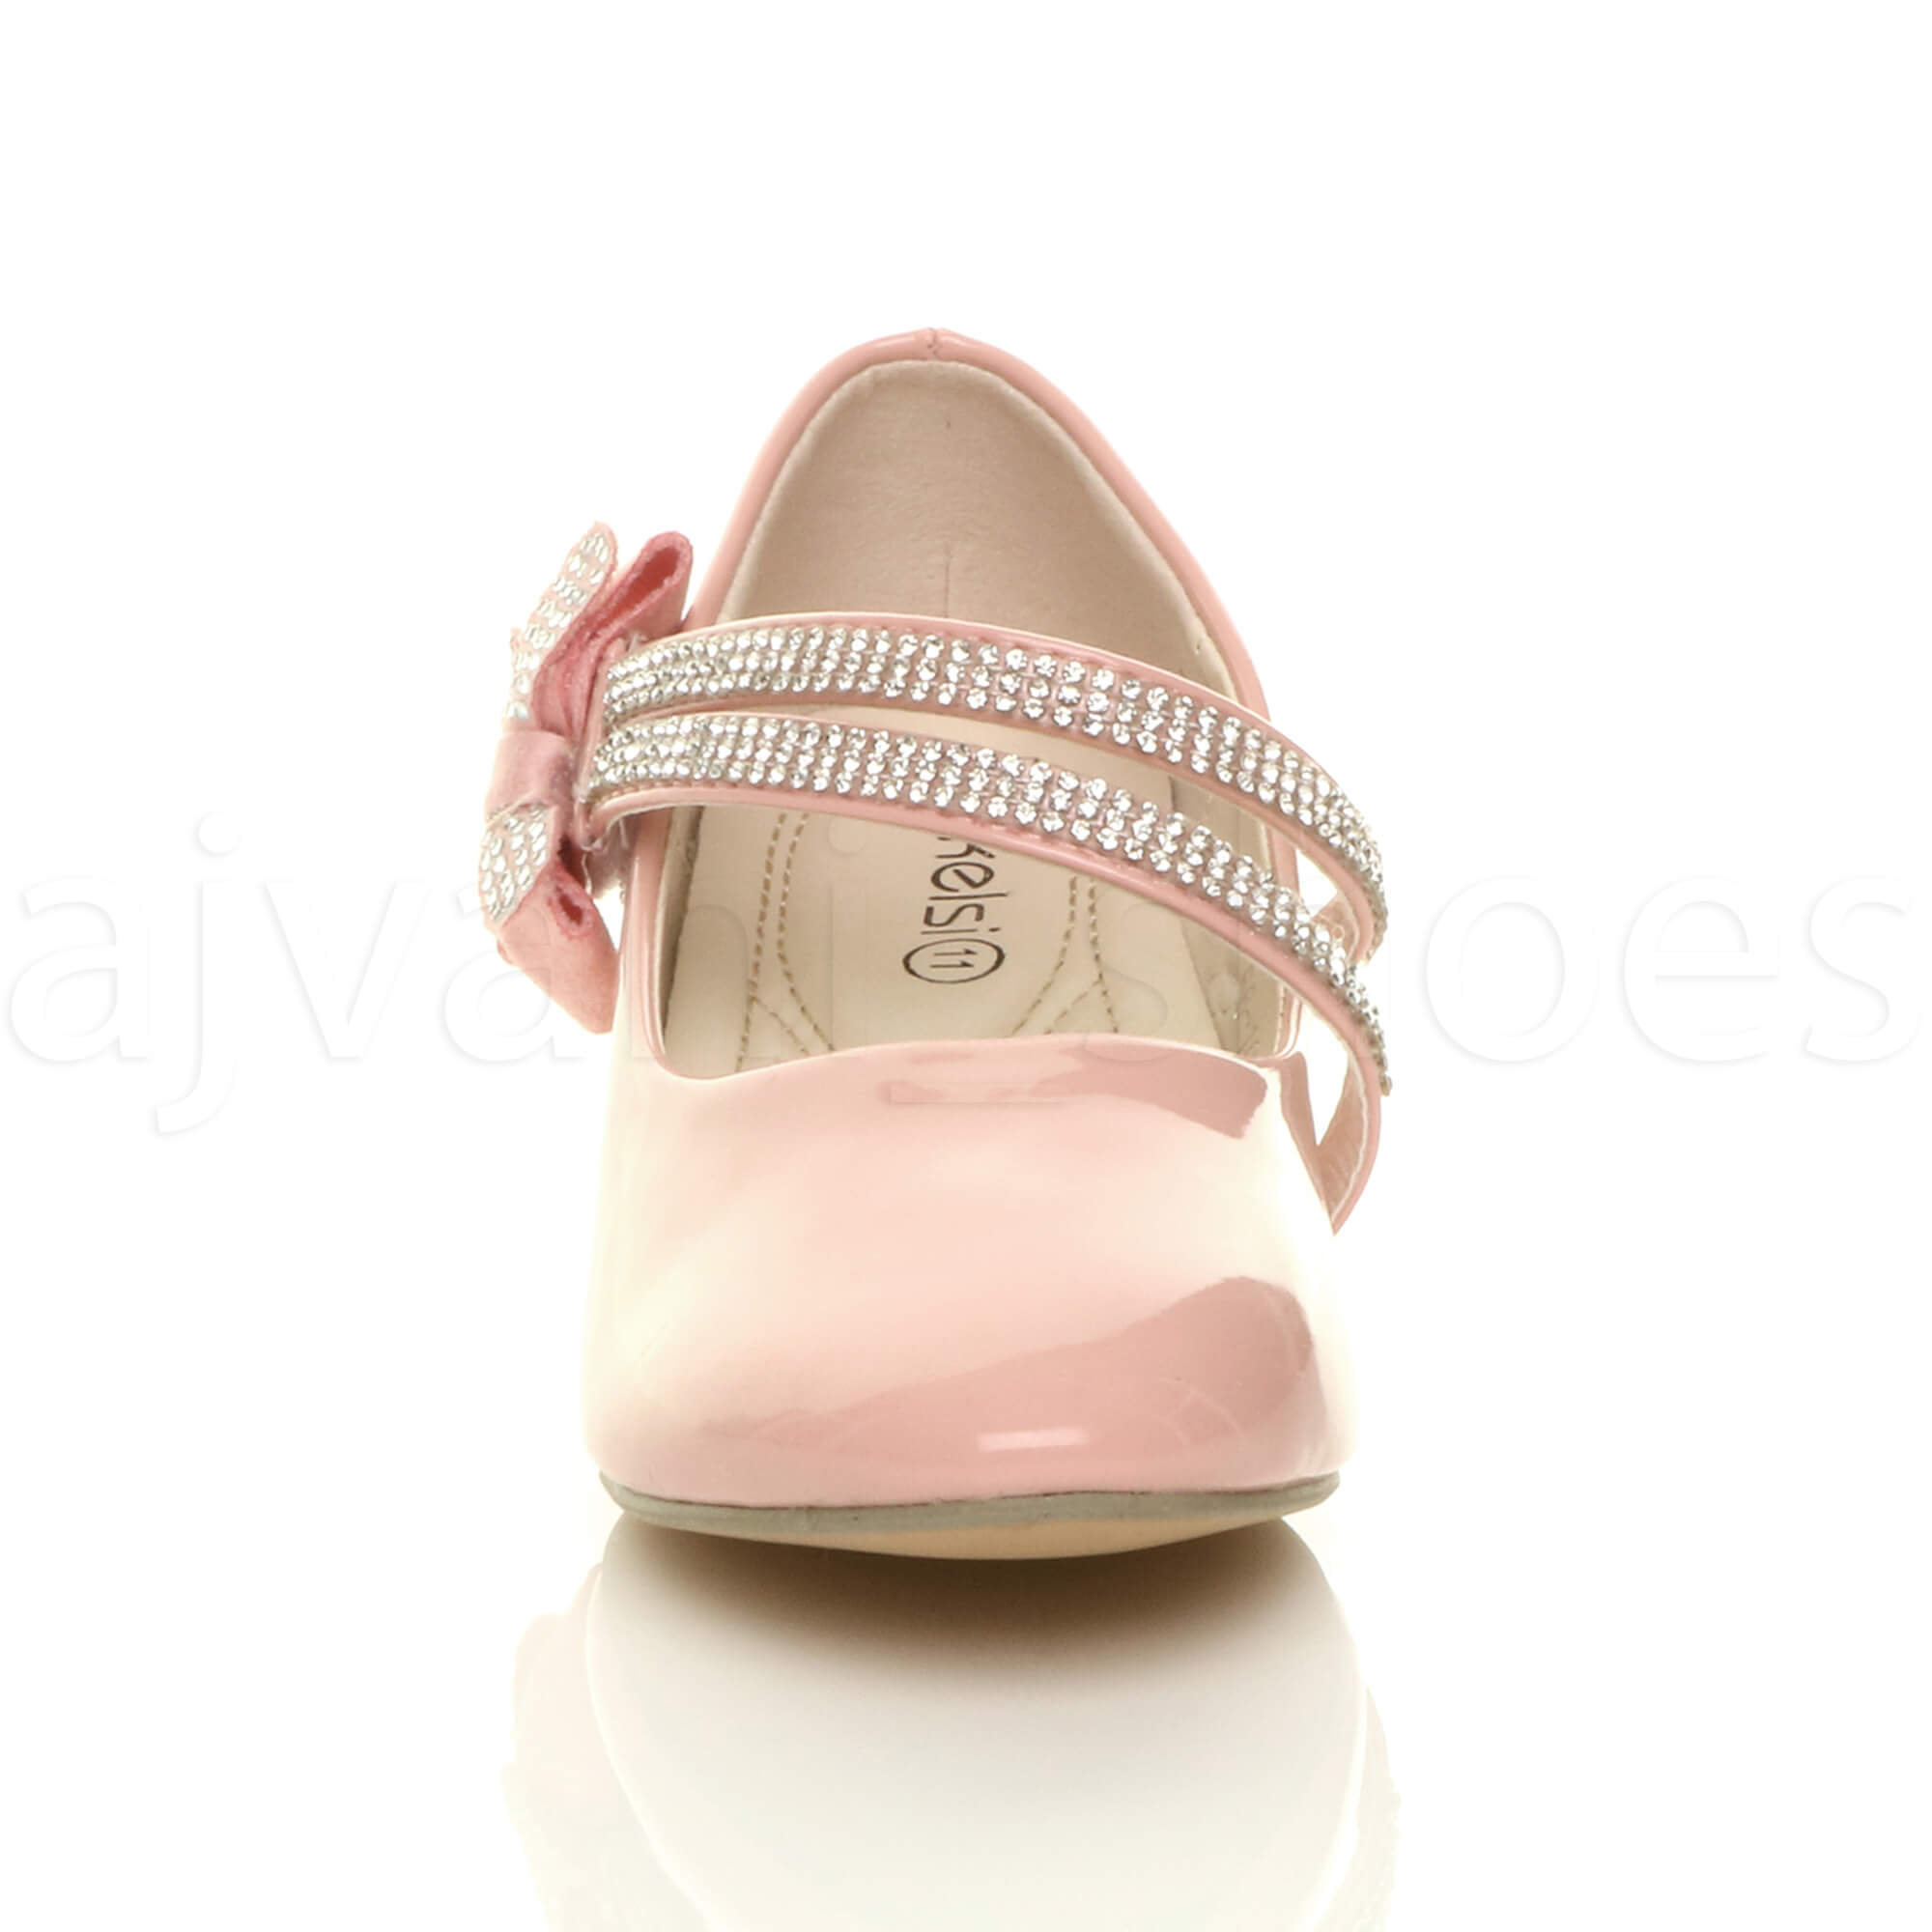 GIRLS-KIDS-CHILDRENS-LOW-HEEL-STRAP-BOW-BRIDESMAID-PARTY-FORMAL-SHOES-SIZE